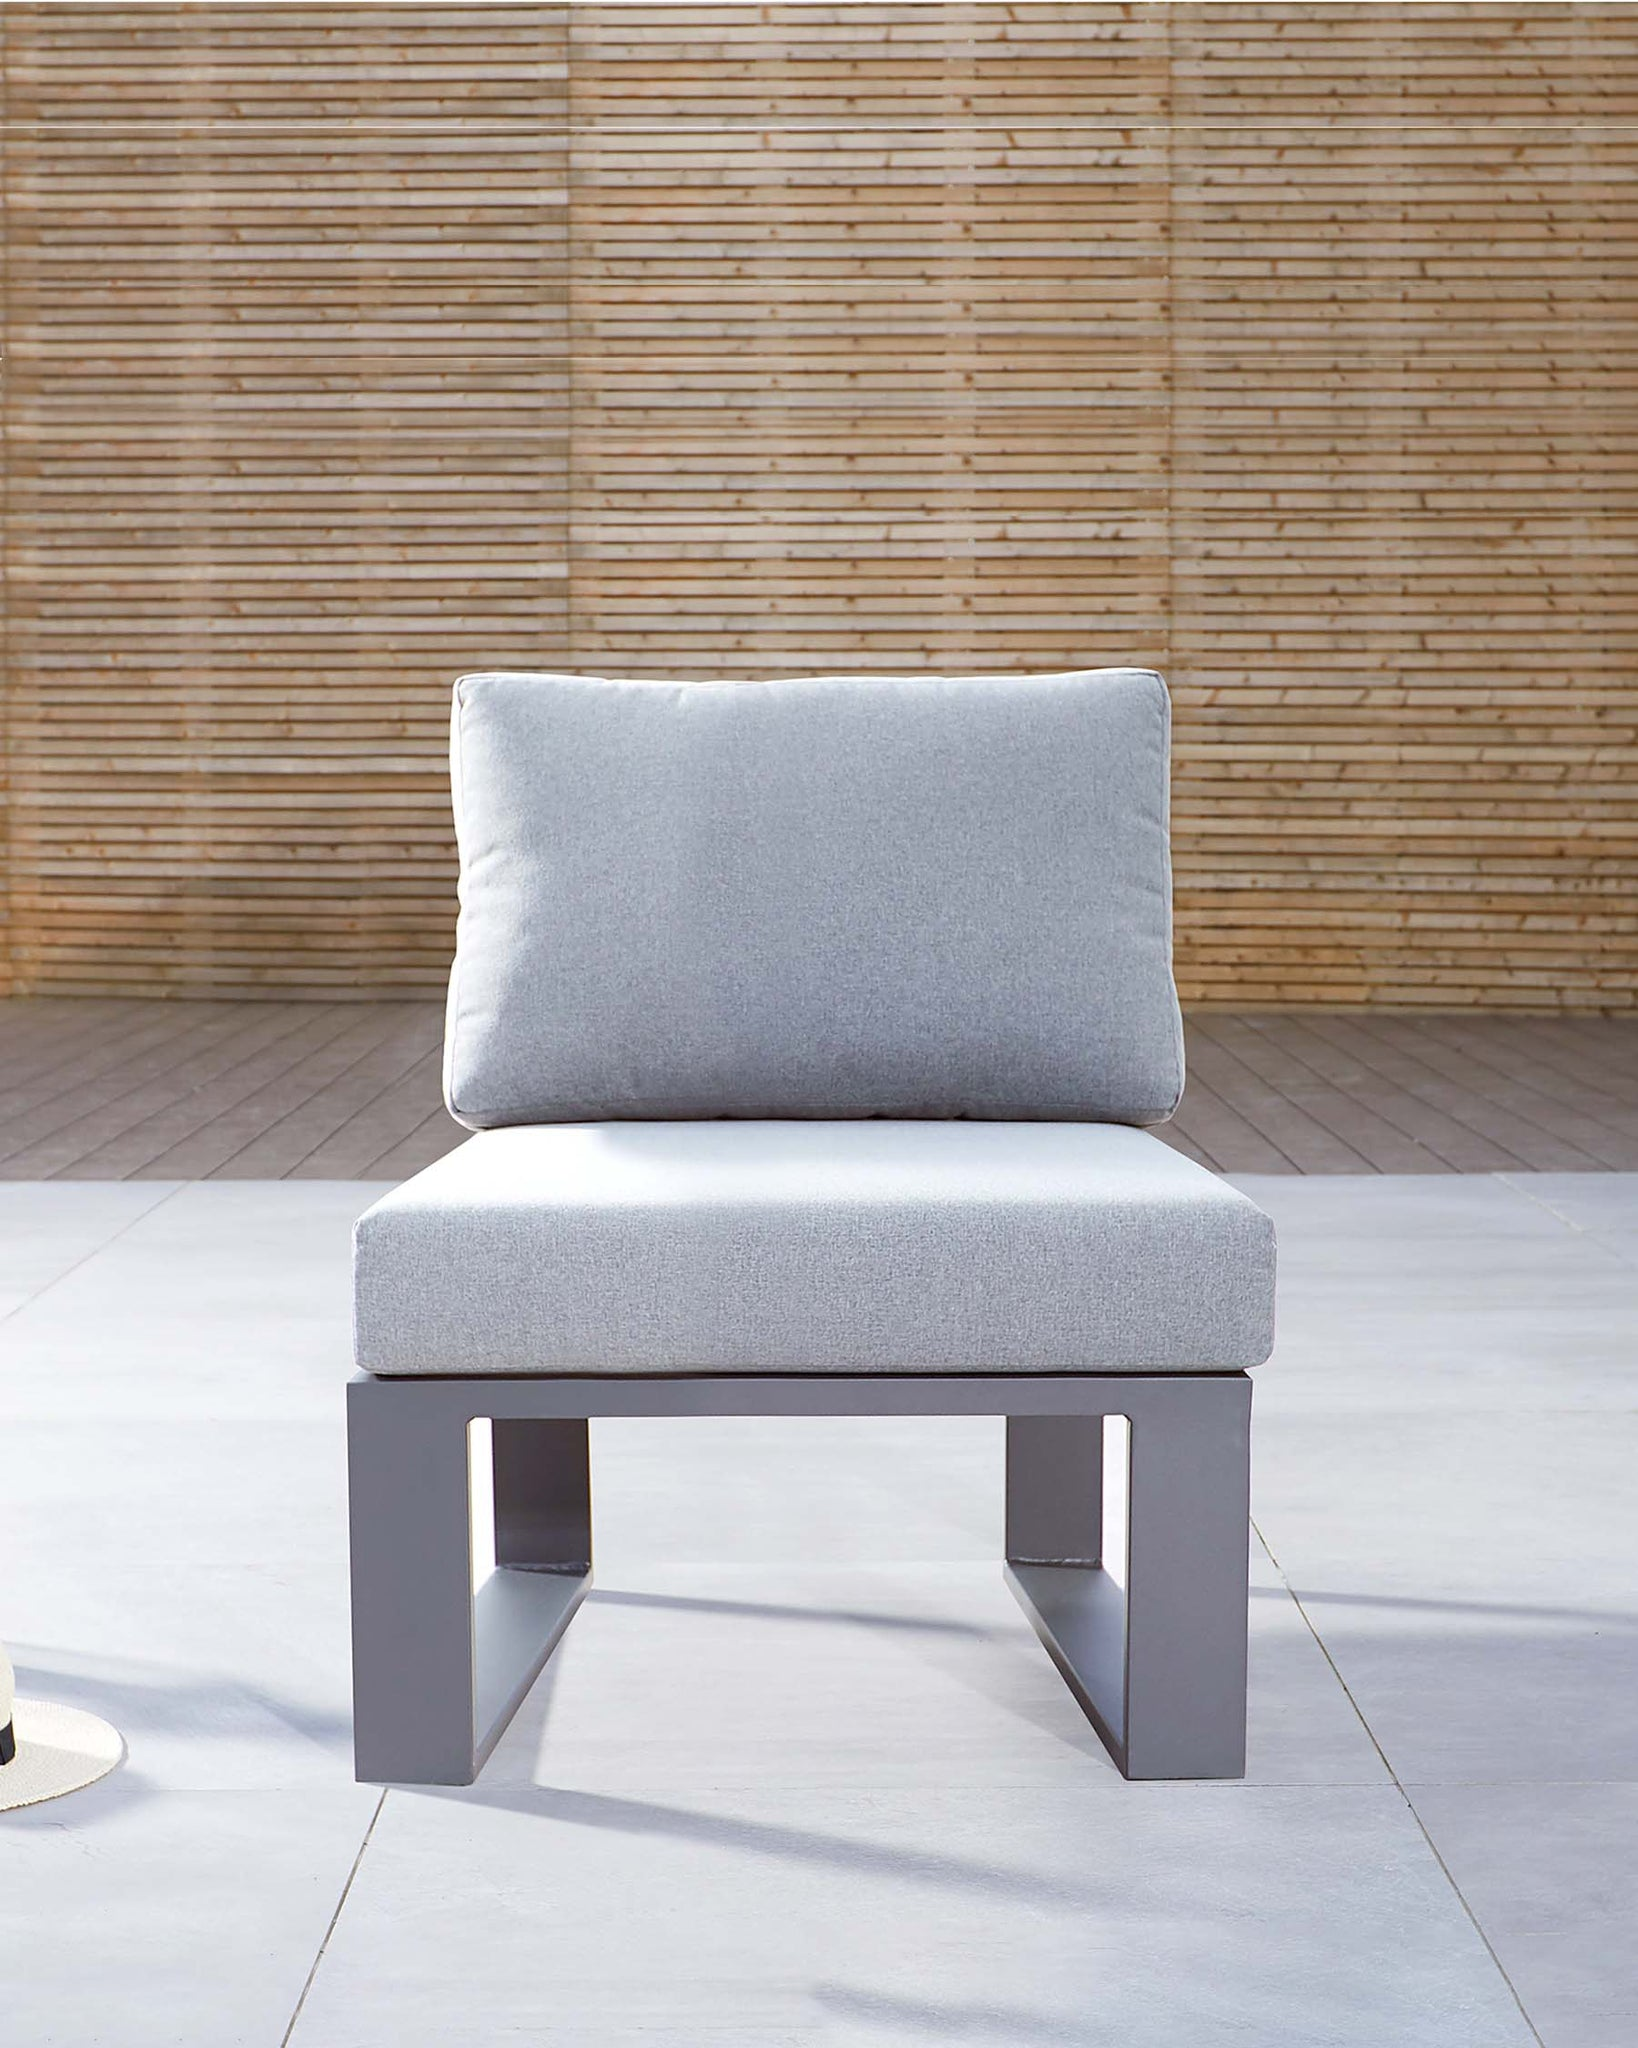 Savannah Grey Aluminium Garden Single Modular Seat